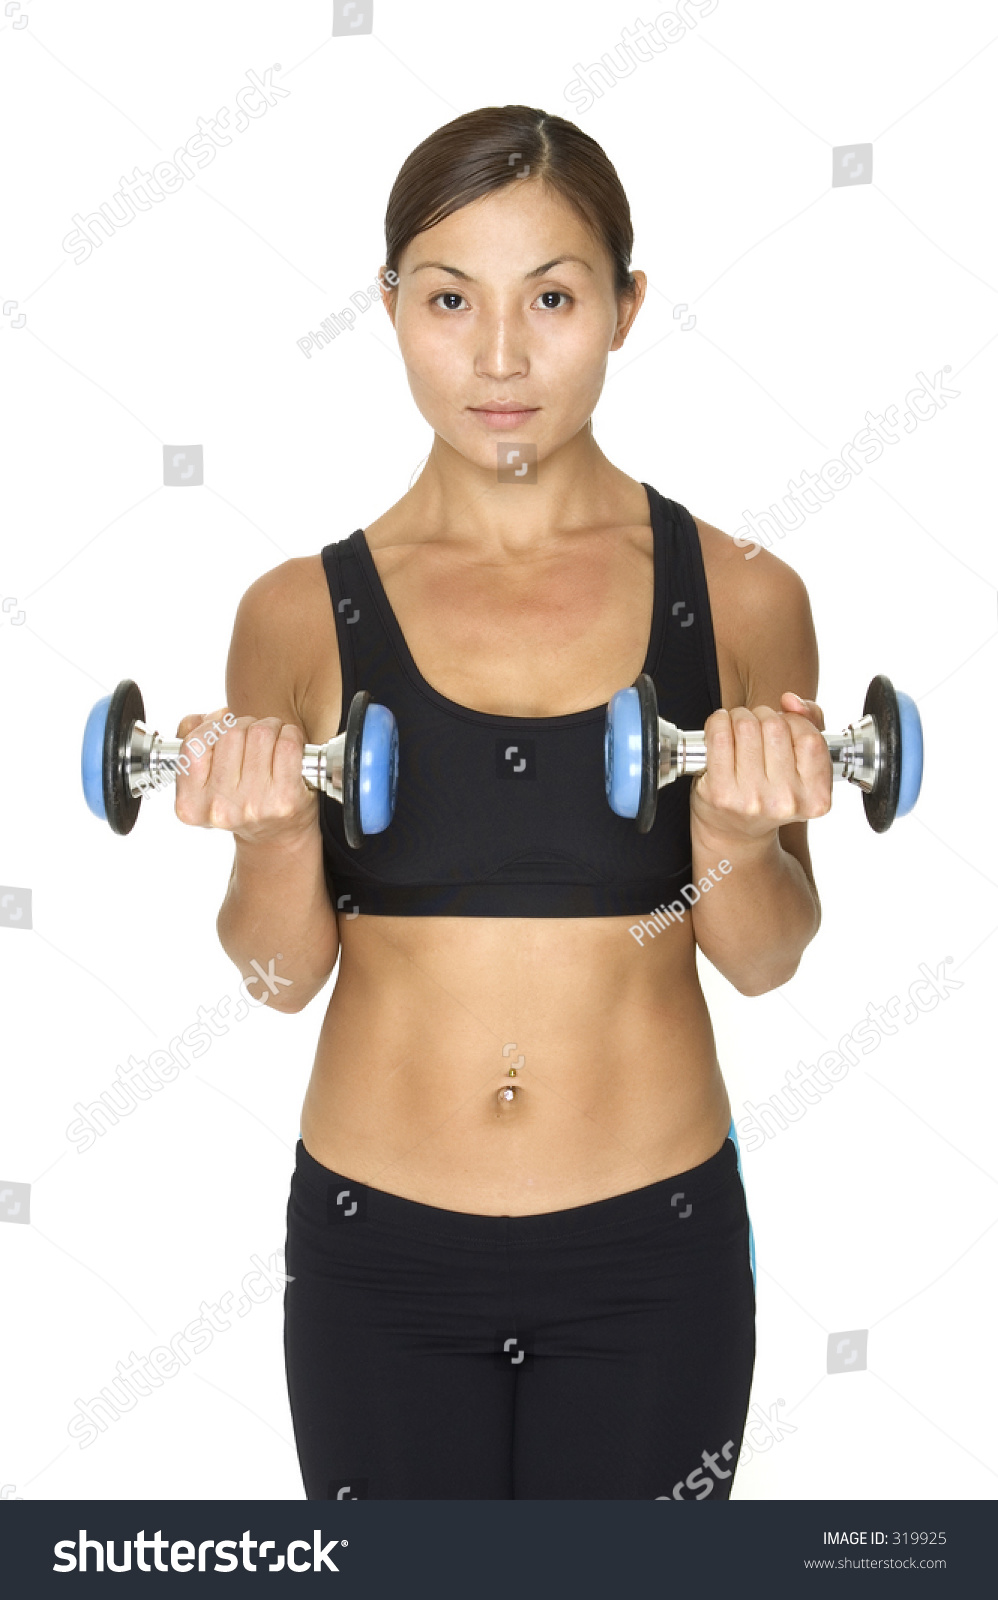 dating fitness instructor